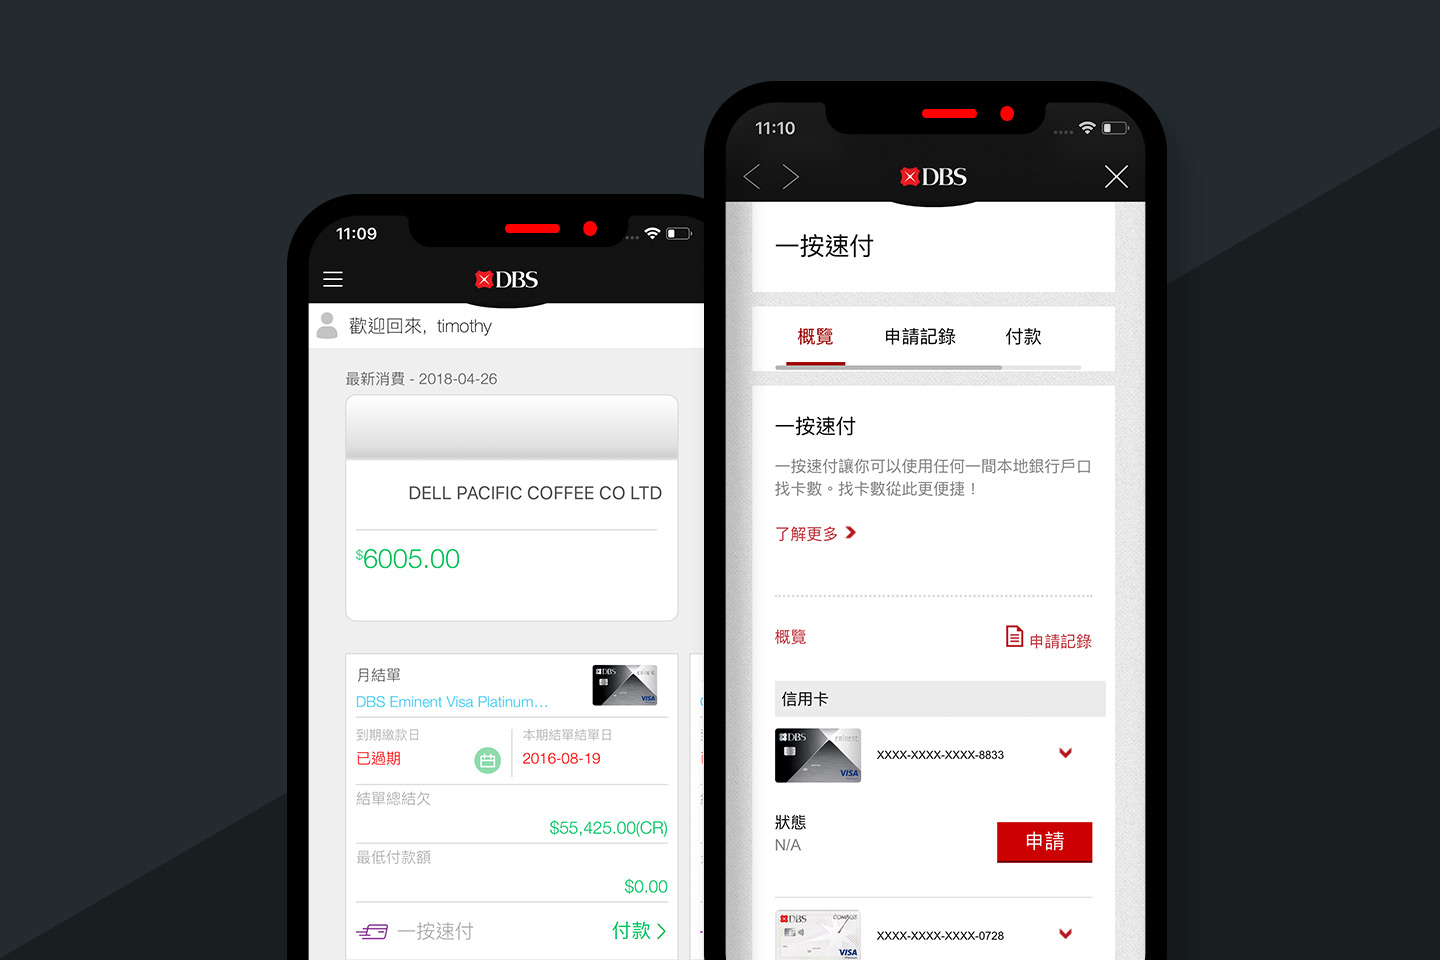 DBS Bank DBS Omni App credit card application and account overview